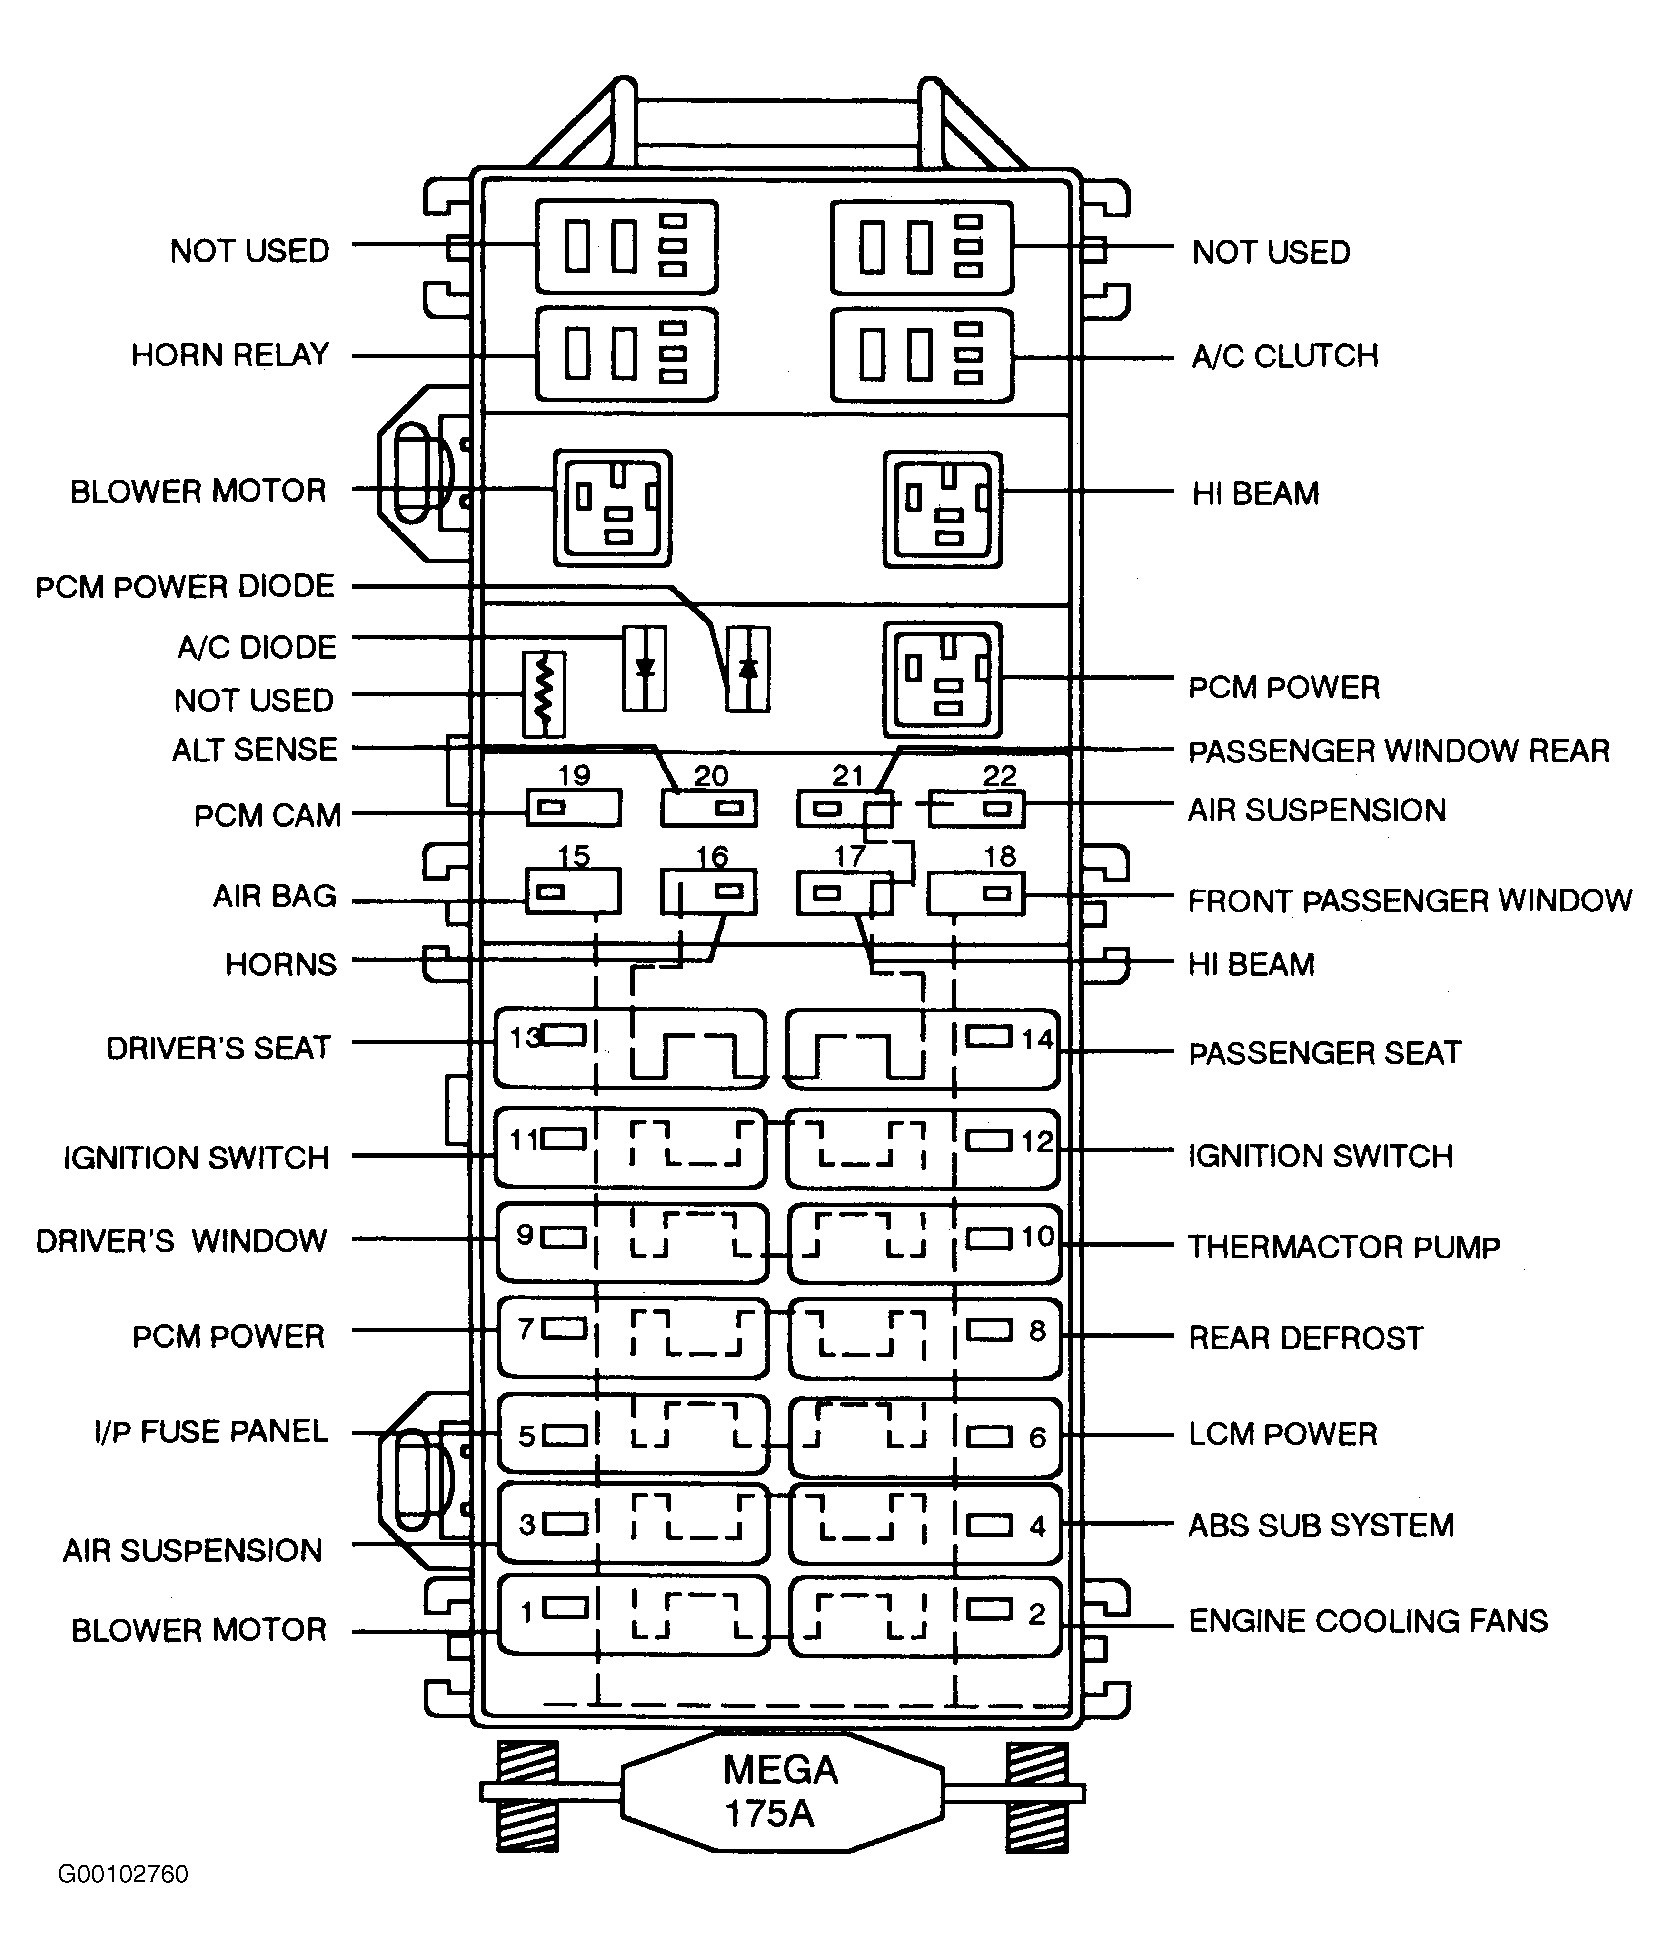 1996 mack fuse box diagram wiring library1996 mack fuse box diagram [ 1670 x 1958 Pixel ]